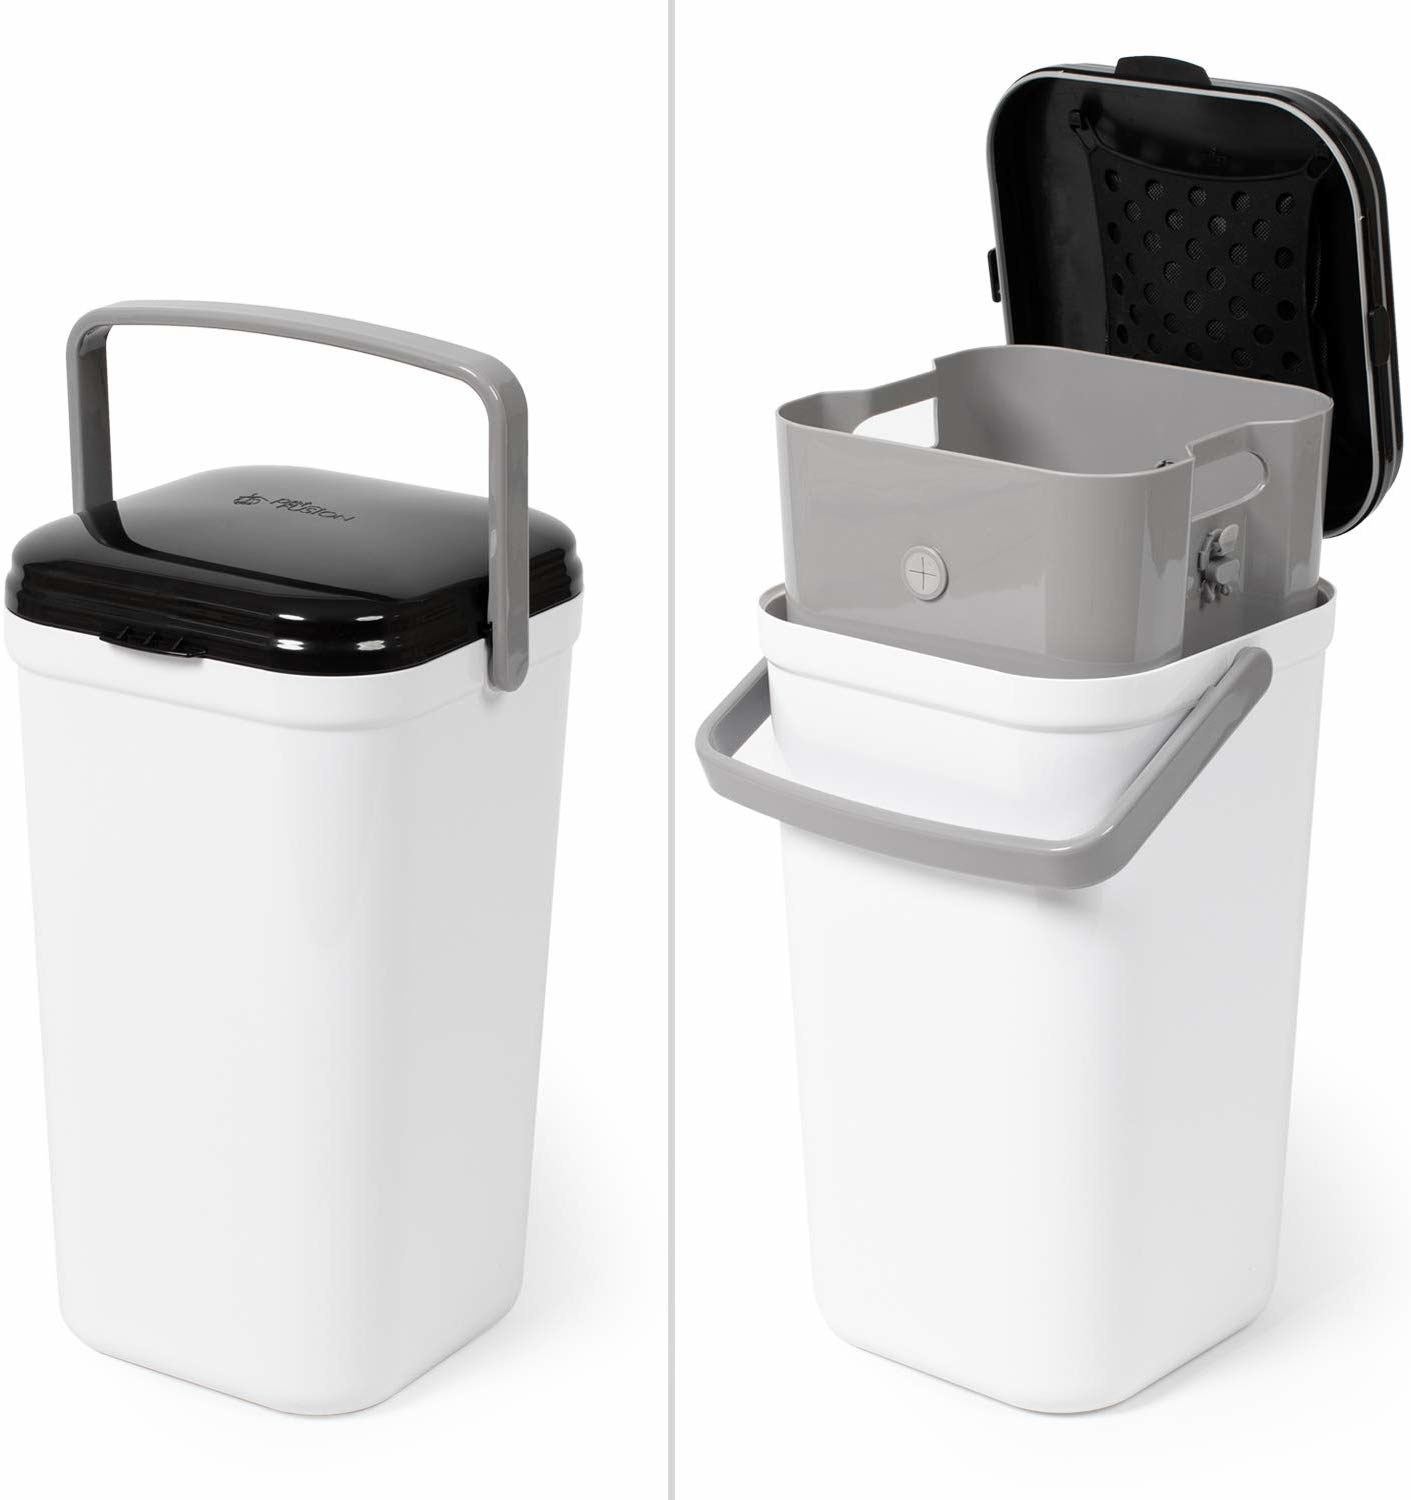 Office trash sized canister with removable tub, handle, and lid